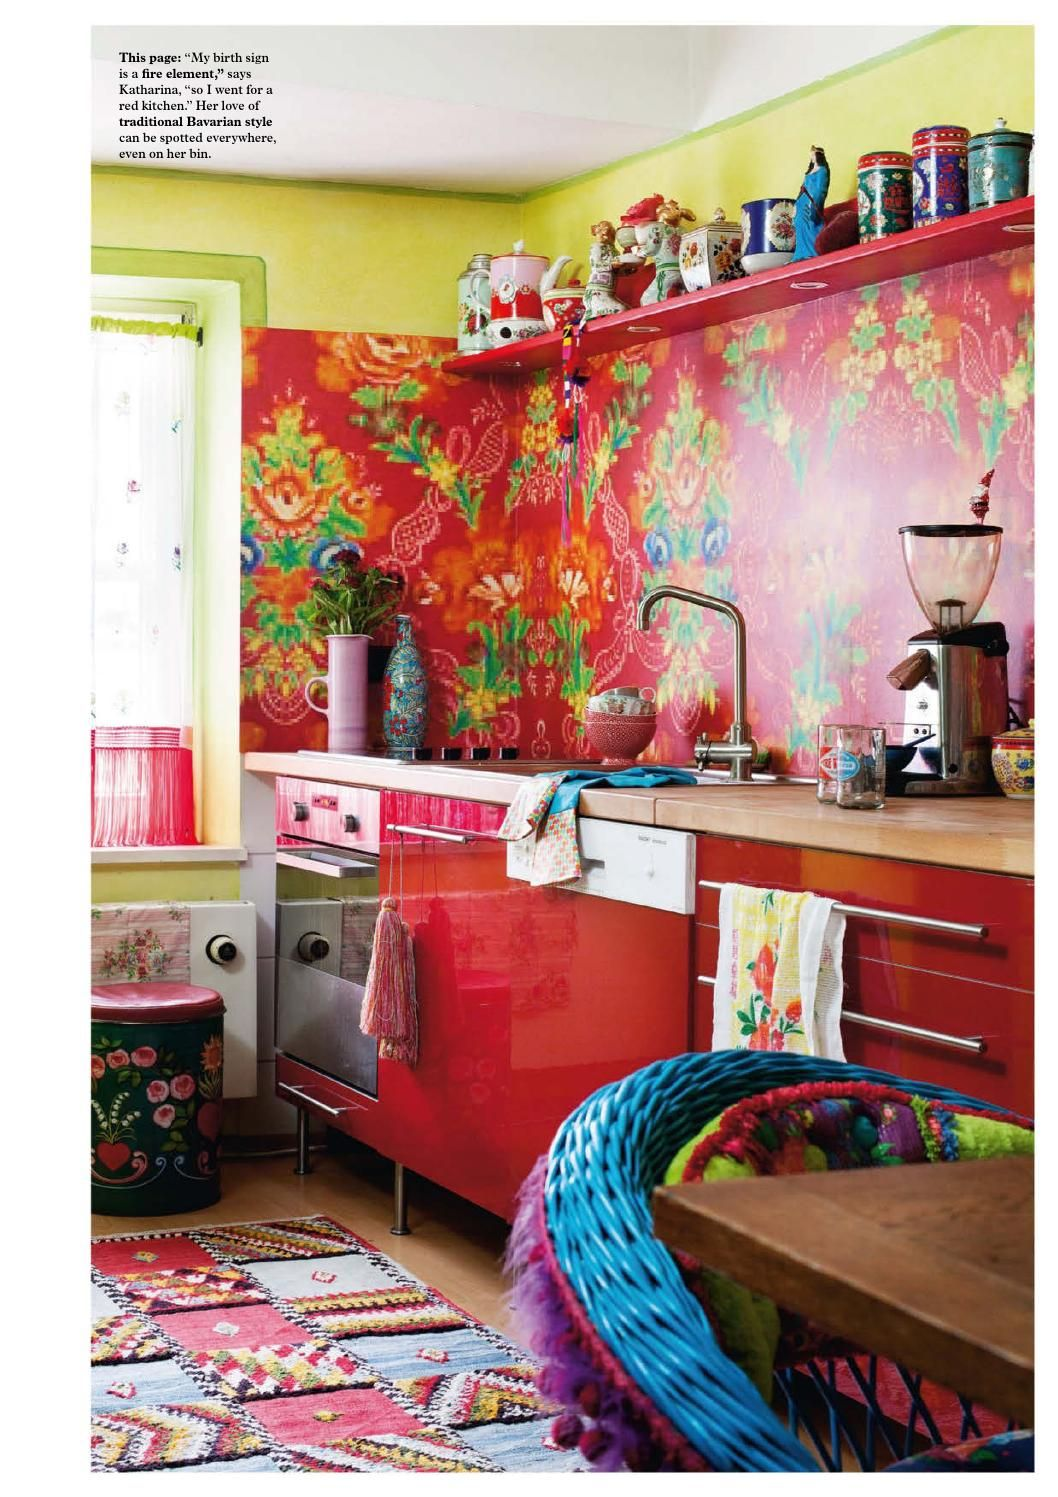 lovely colorful kitchen | Beautiful bright color kitchen to wake up to! Katharina ...